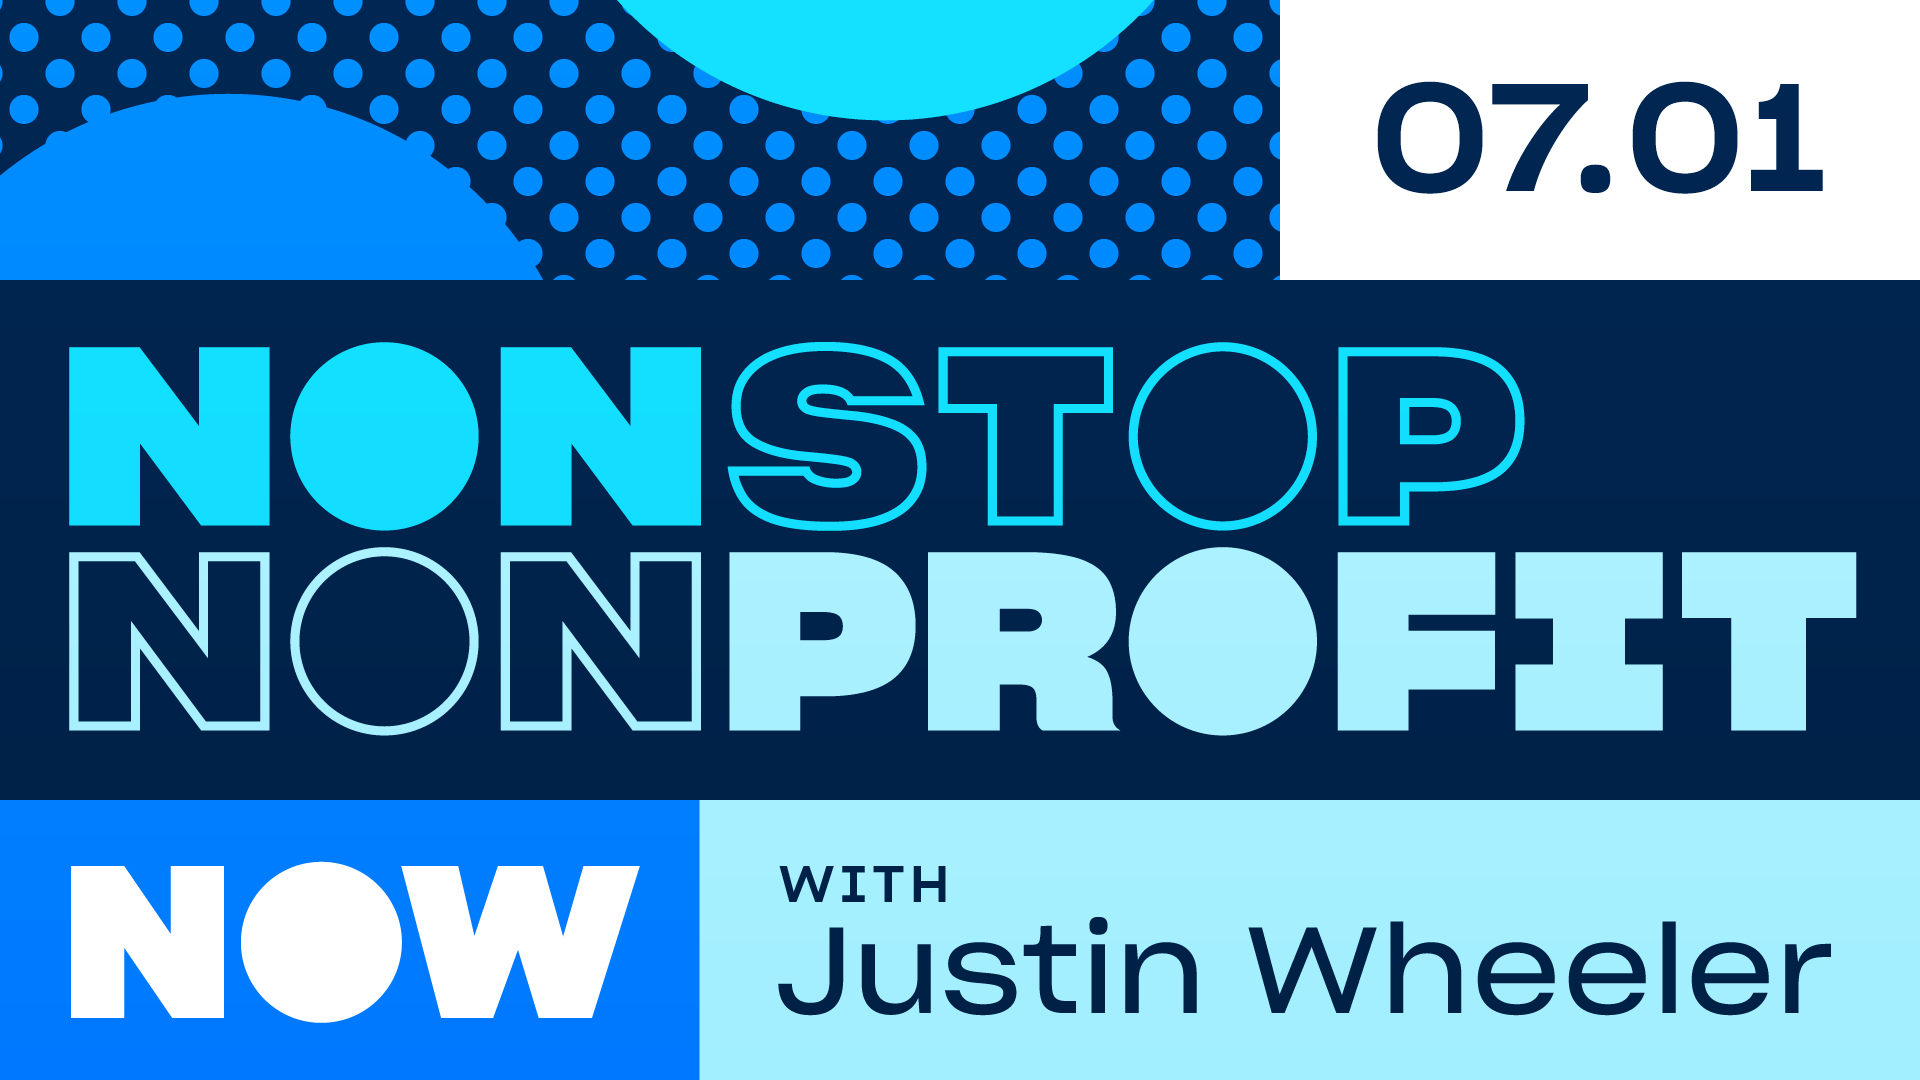 Nonstop Nonprofit NOW with Justin Wheeler · 07.01.2020